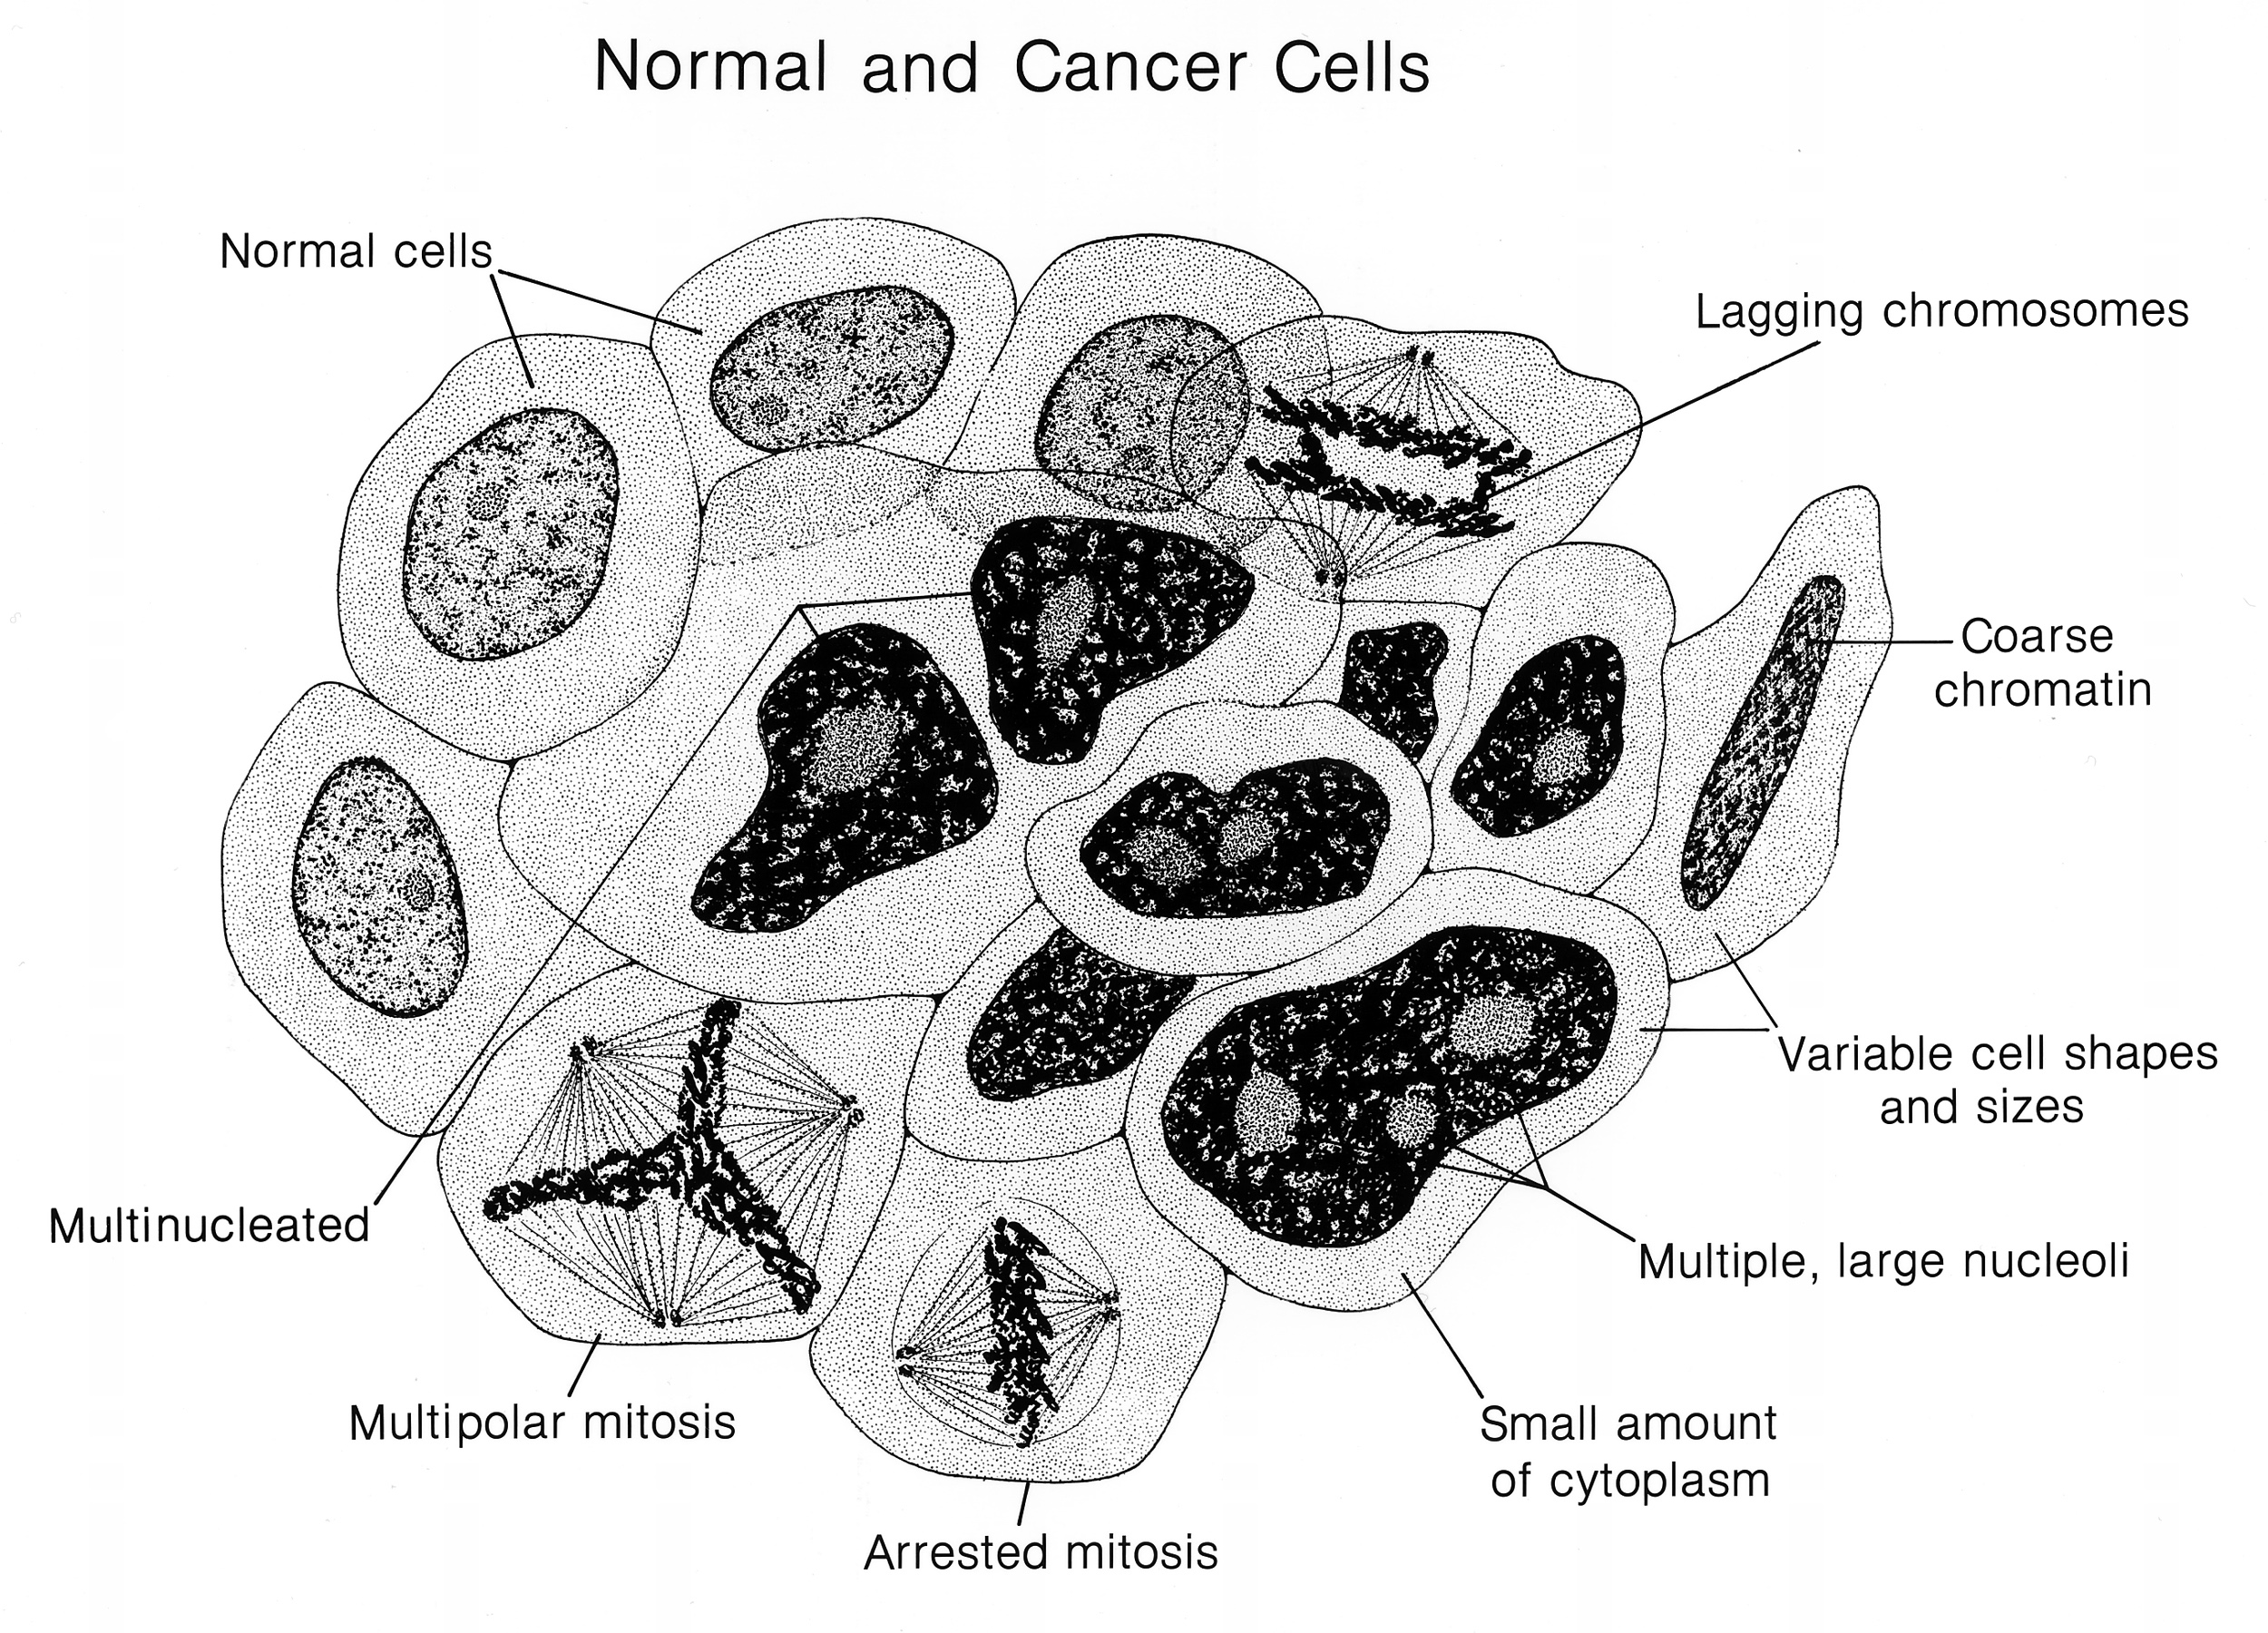 Photo: National Cancer Institute